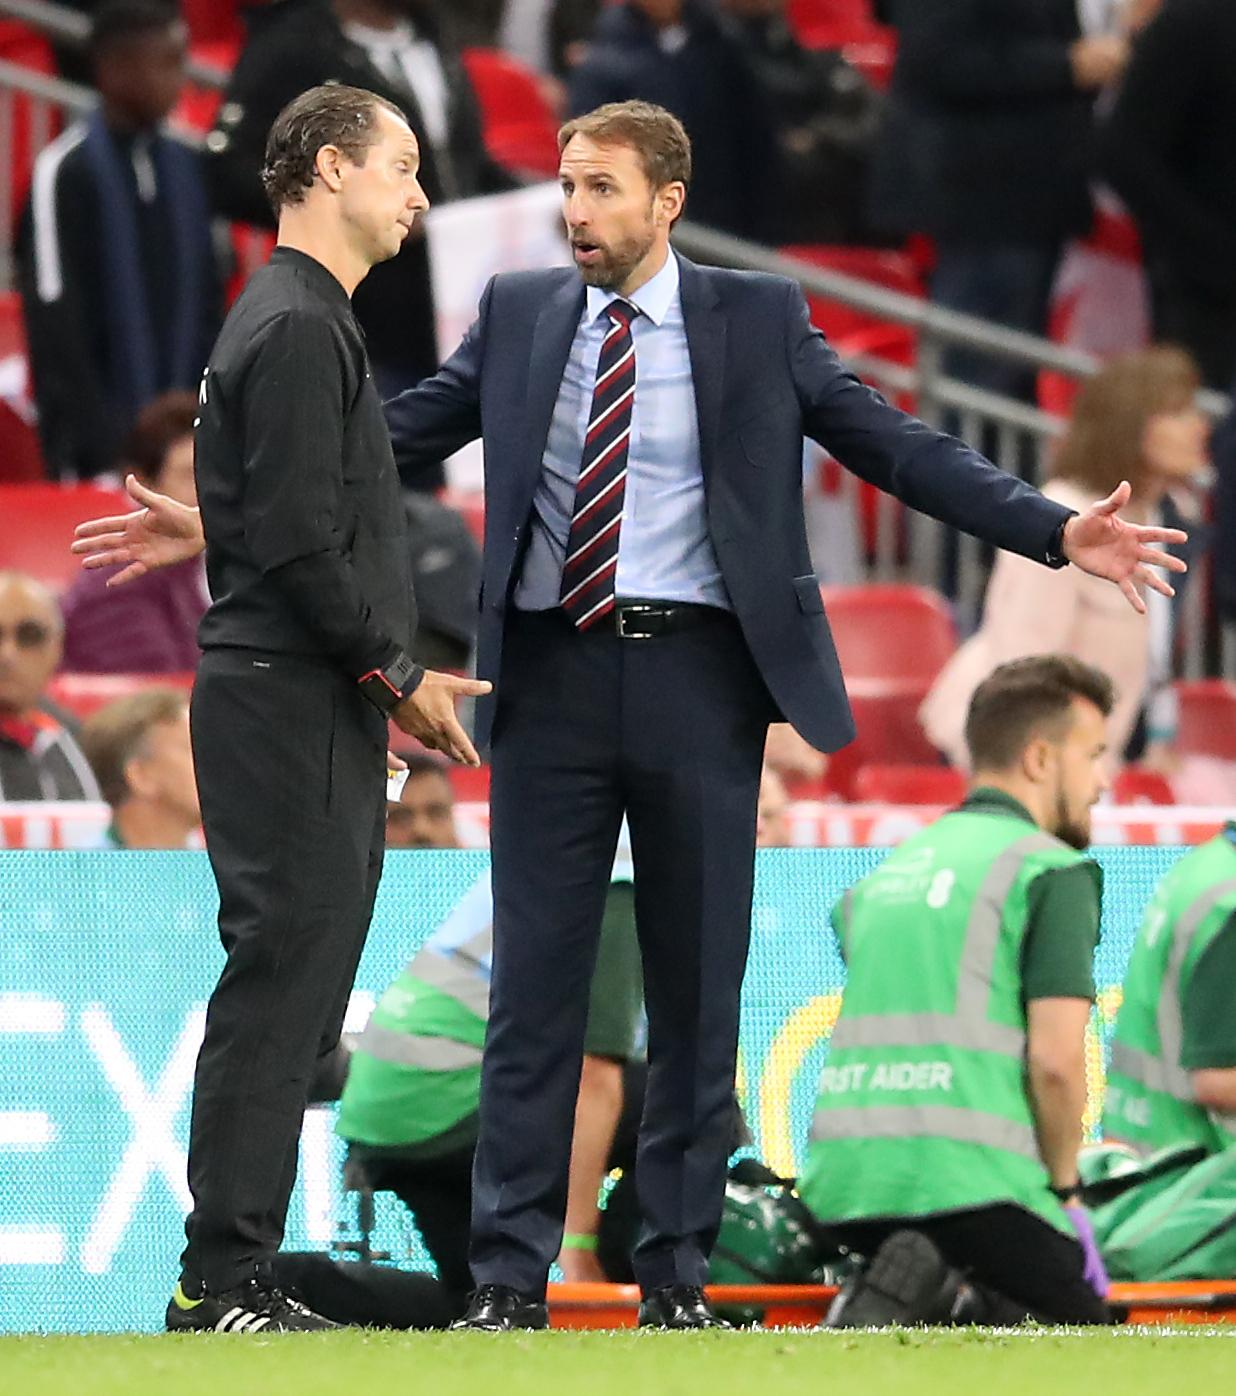 Southgate was also fuming with the officials over Welbecks disallowed goal - and felt it cost them a point